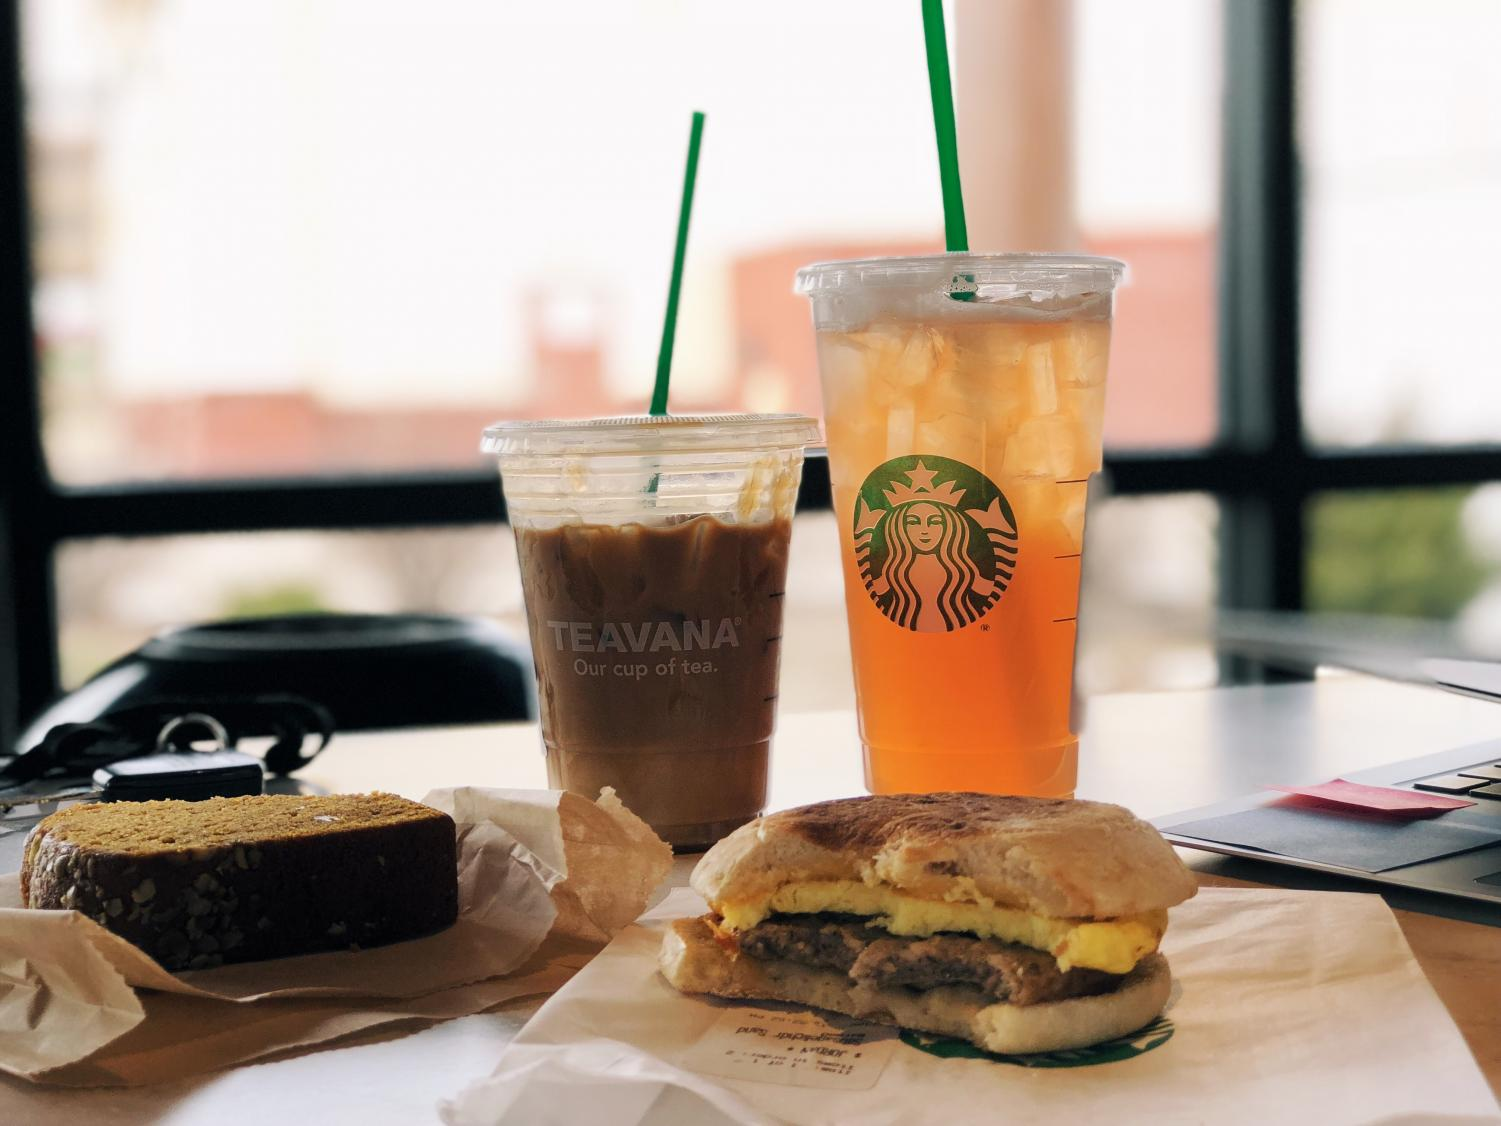 This delicious Starbucks spread features an iced coffee, iced tea, a pumpkin loaf and a sausage breakfast sandwich.